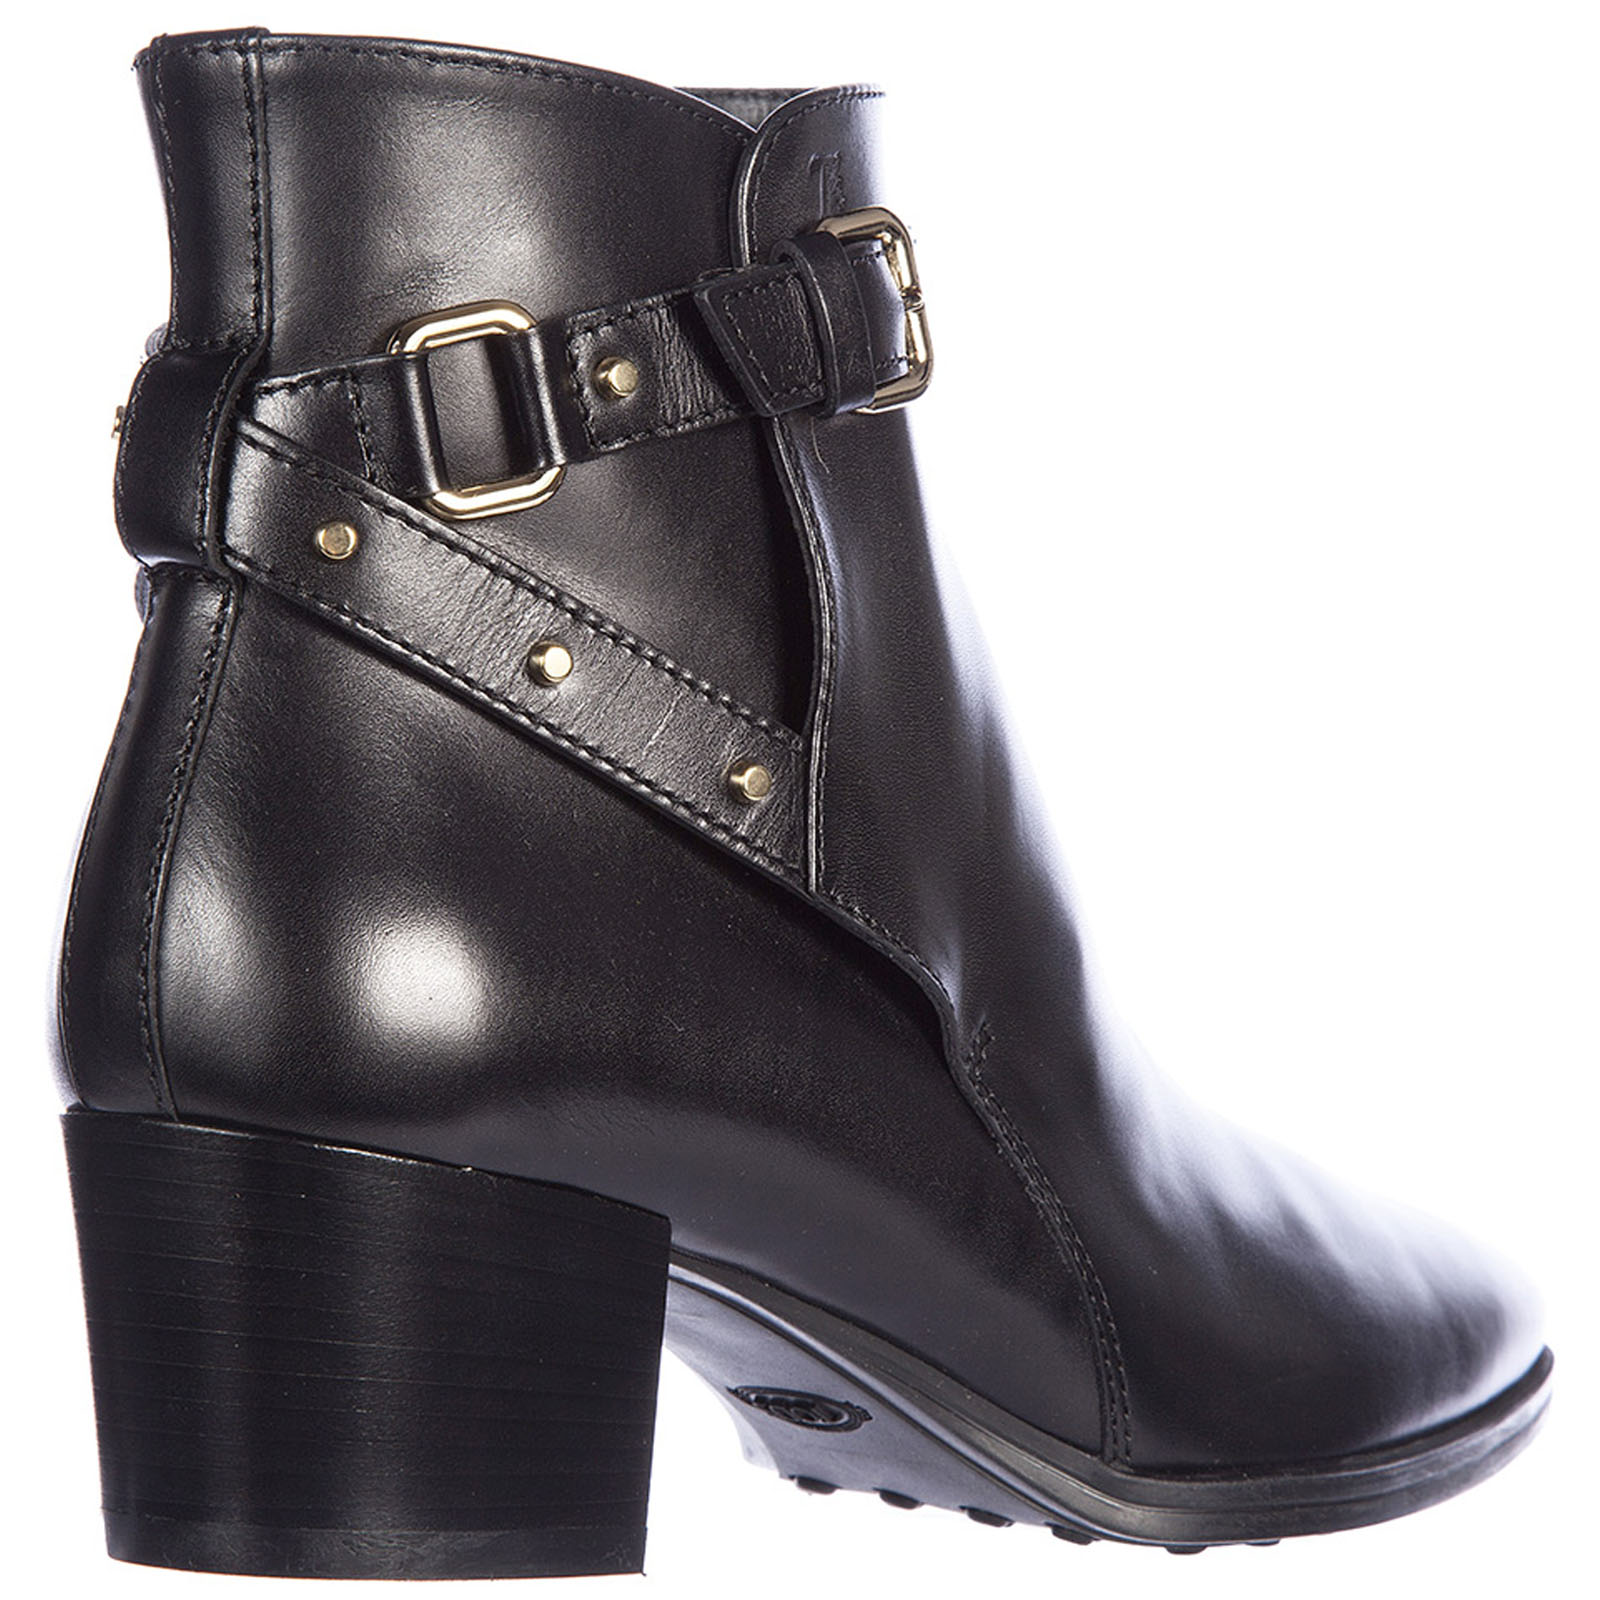 Women's leather ankle boots booties gomma xc cinturino